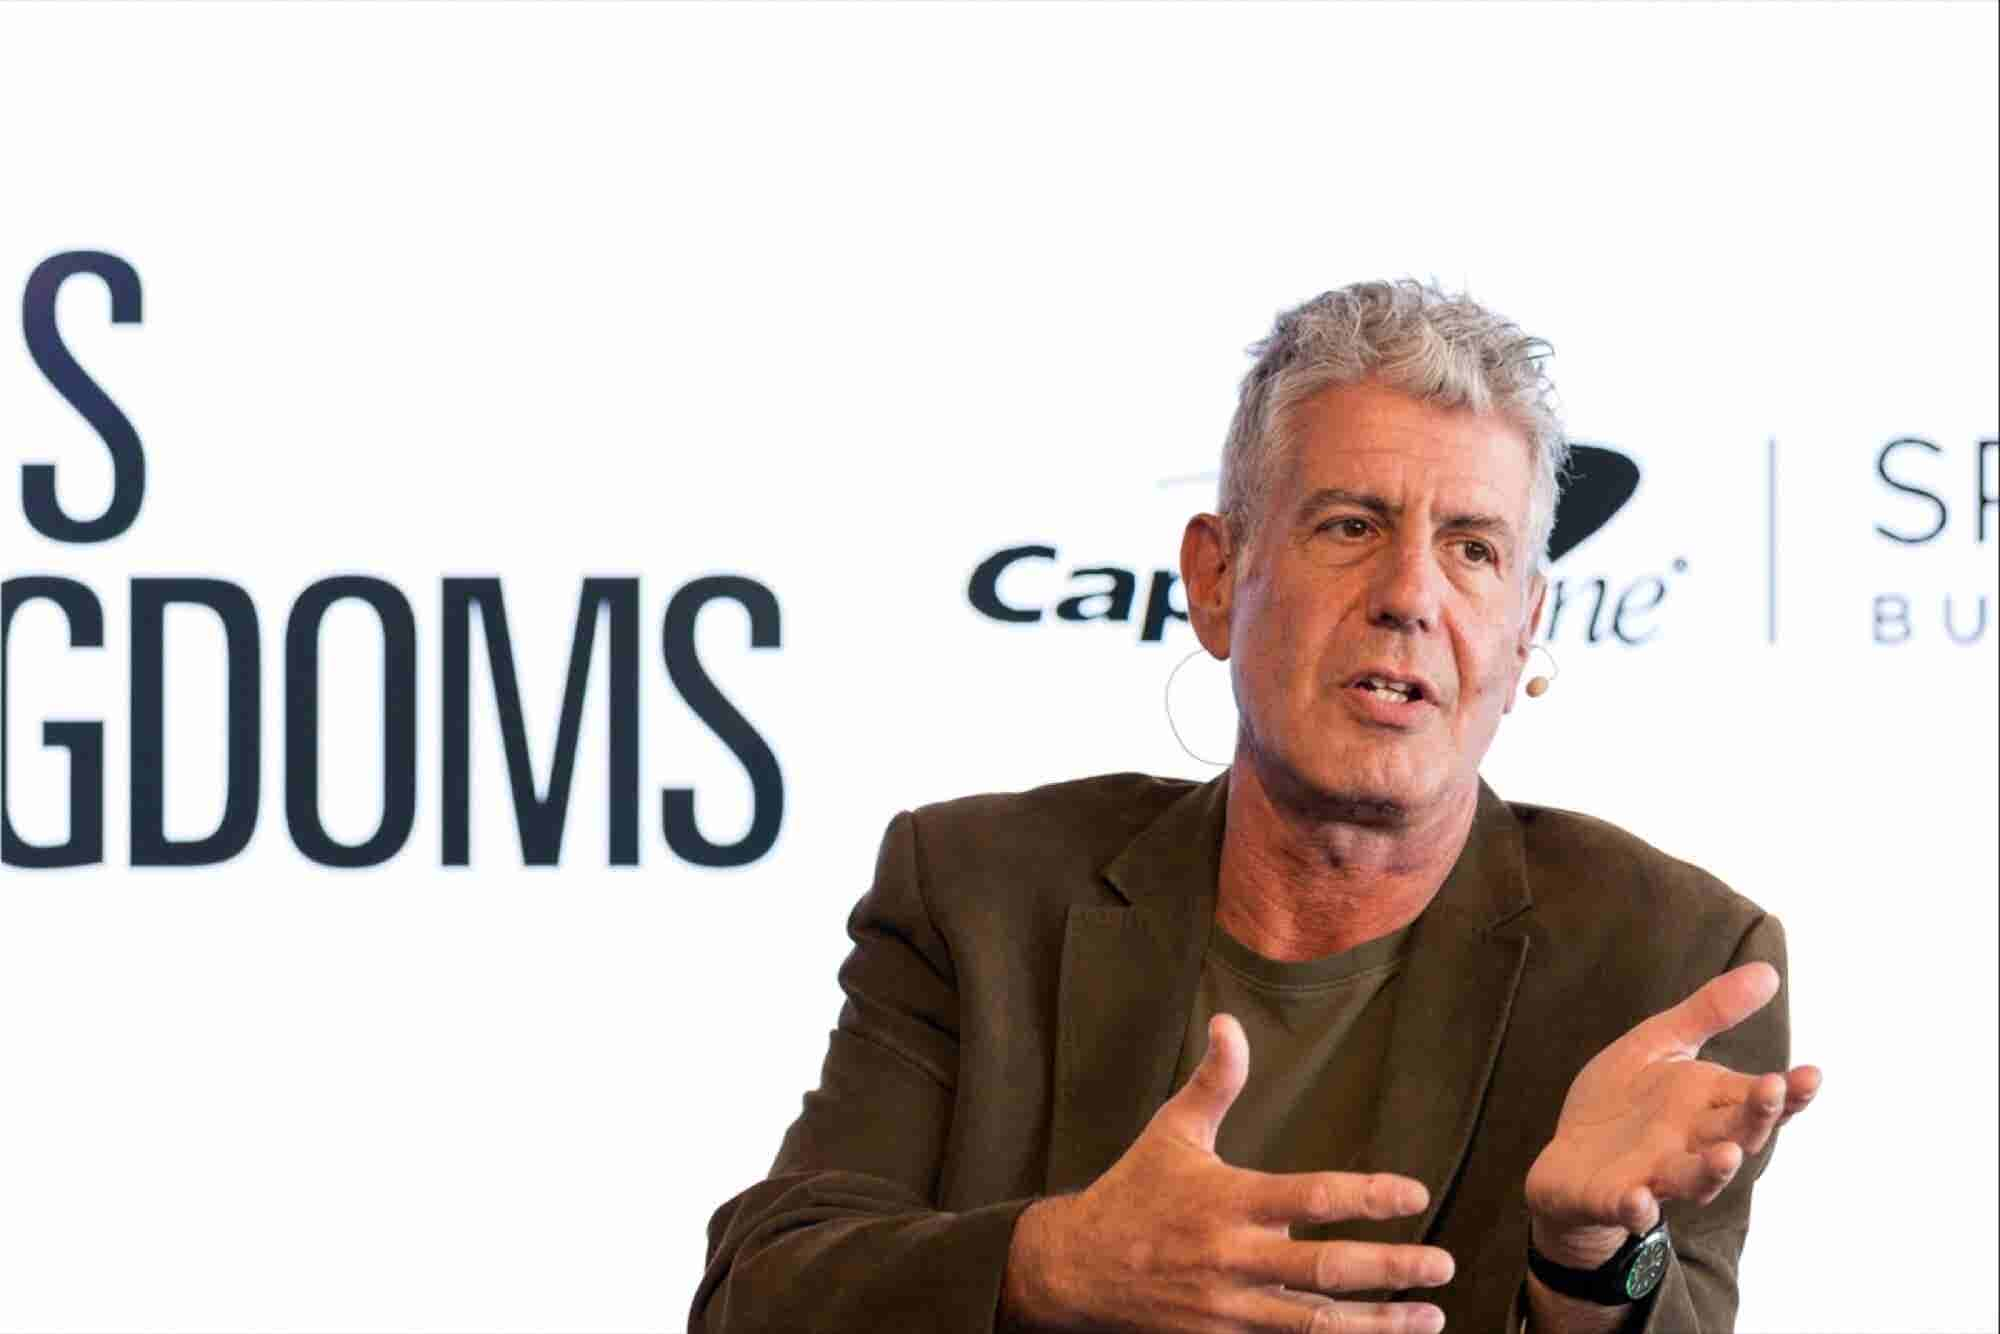 At SXSW - Anthony Bourdain's Advice for Entrepreneurs: Don't Suck, Be Fake or Be Boring